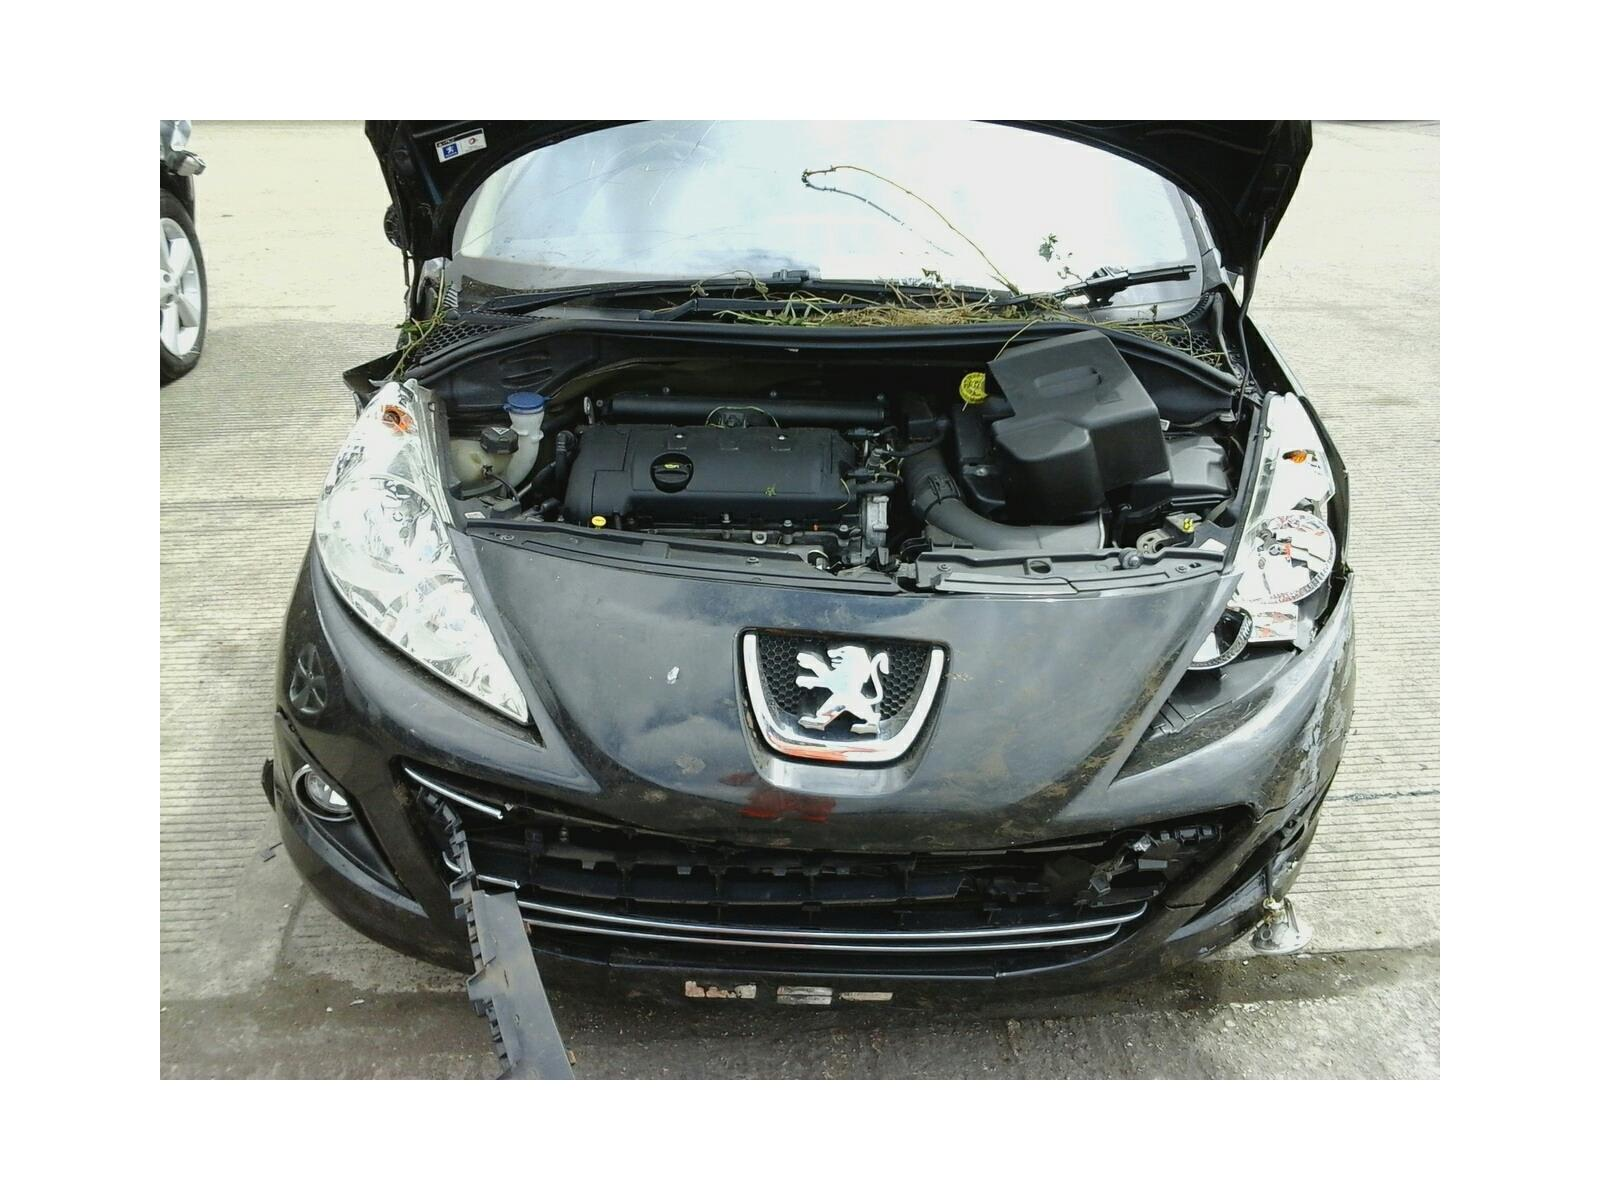 Peugeot 207 Under Bonnet Fuse Box Schematic Diagrams 206 Headlight Electrical Wiring 2013